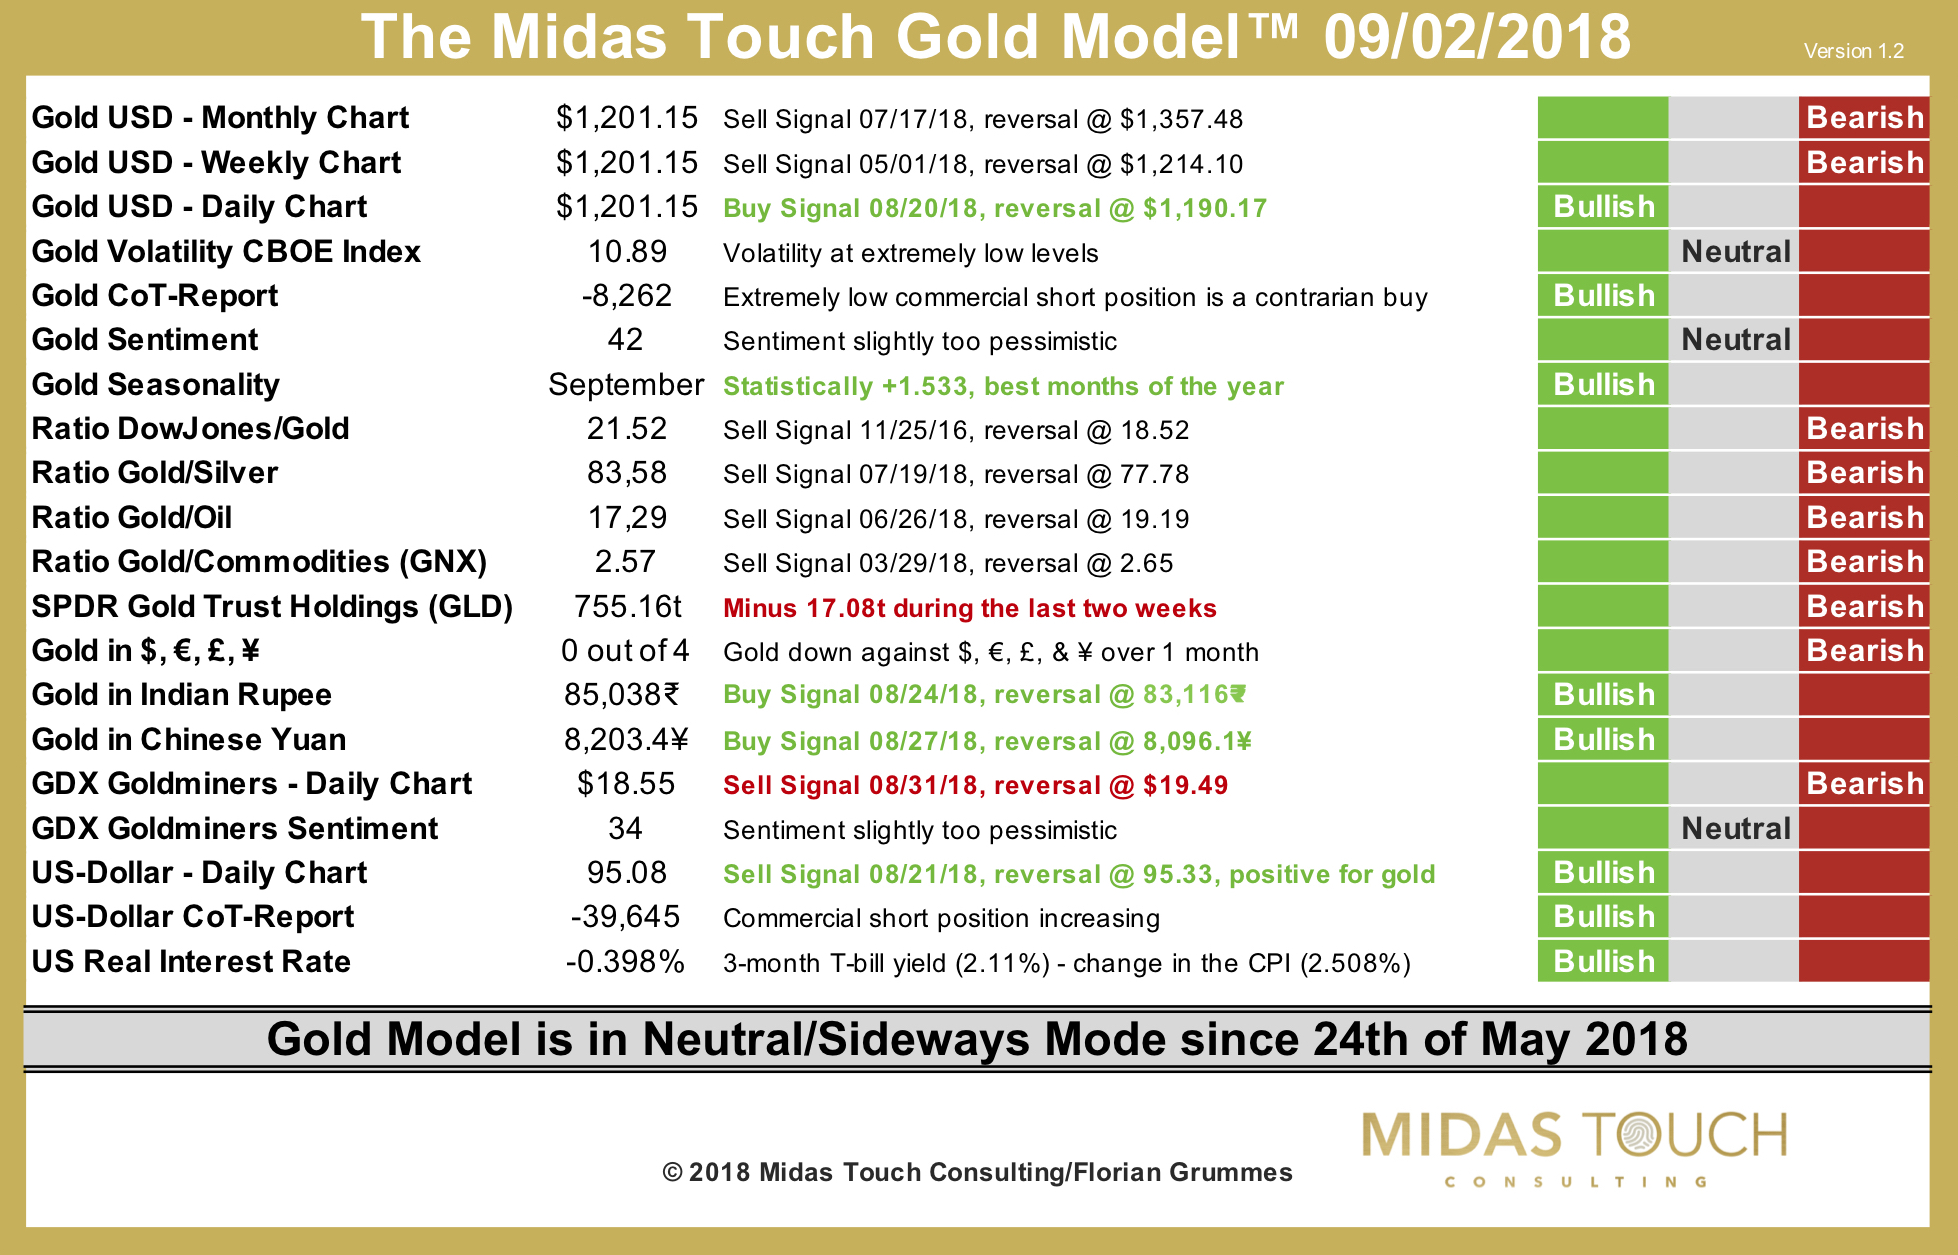 The Midas Touch Gold Model™ as of September 2nd, 2018